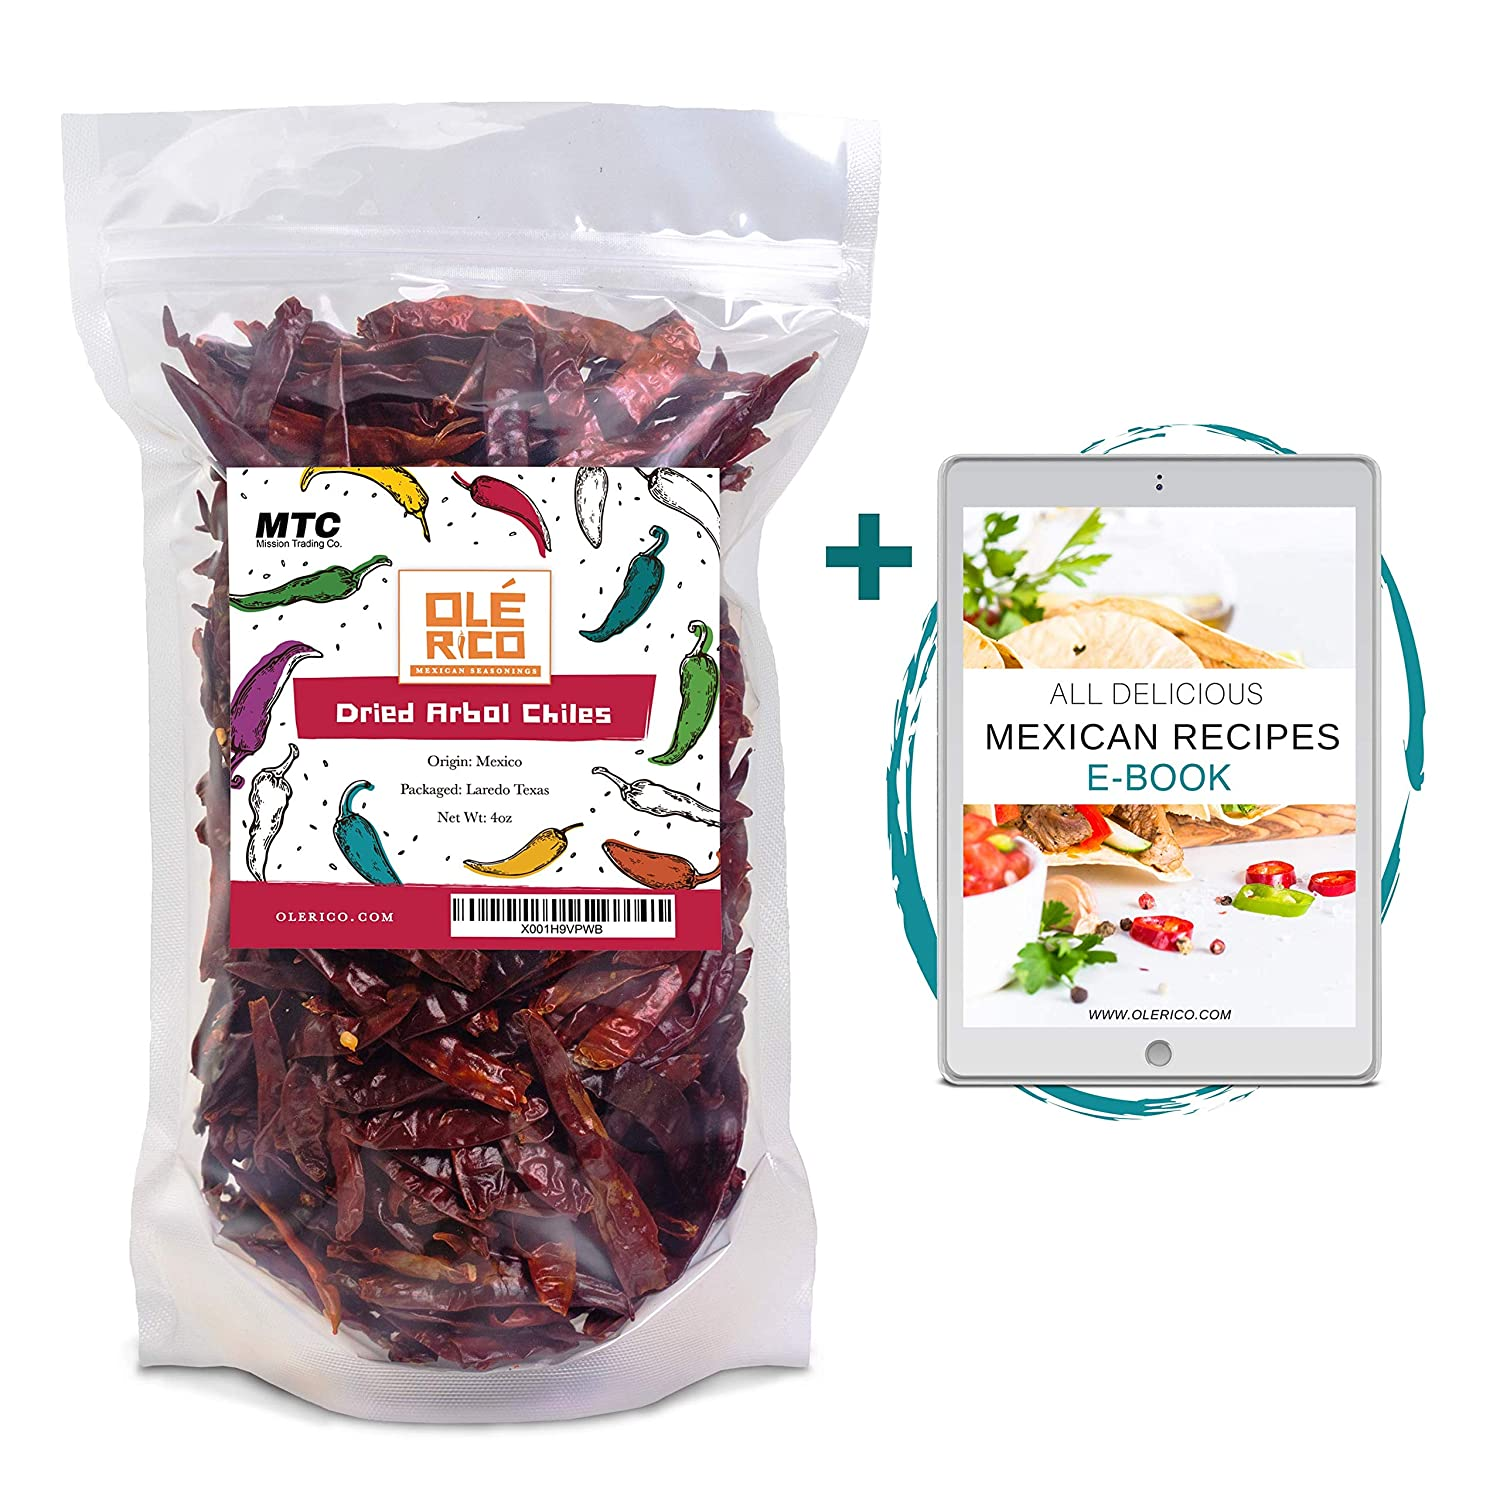 Chilis De Arbol 4 oz Spicy Heat Natural Whole Dried Peppers For Mexican Recipes by Ole Rico